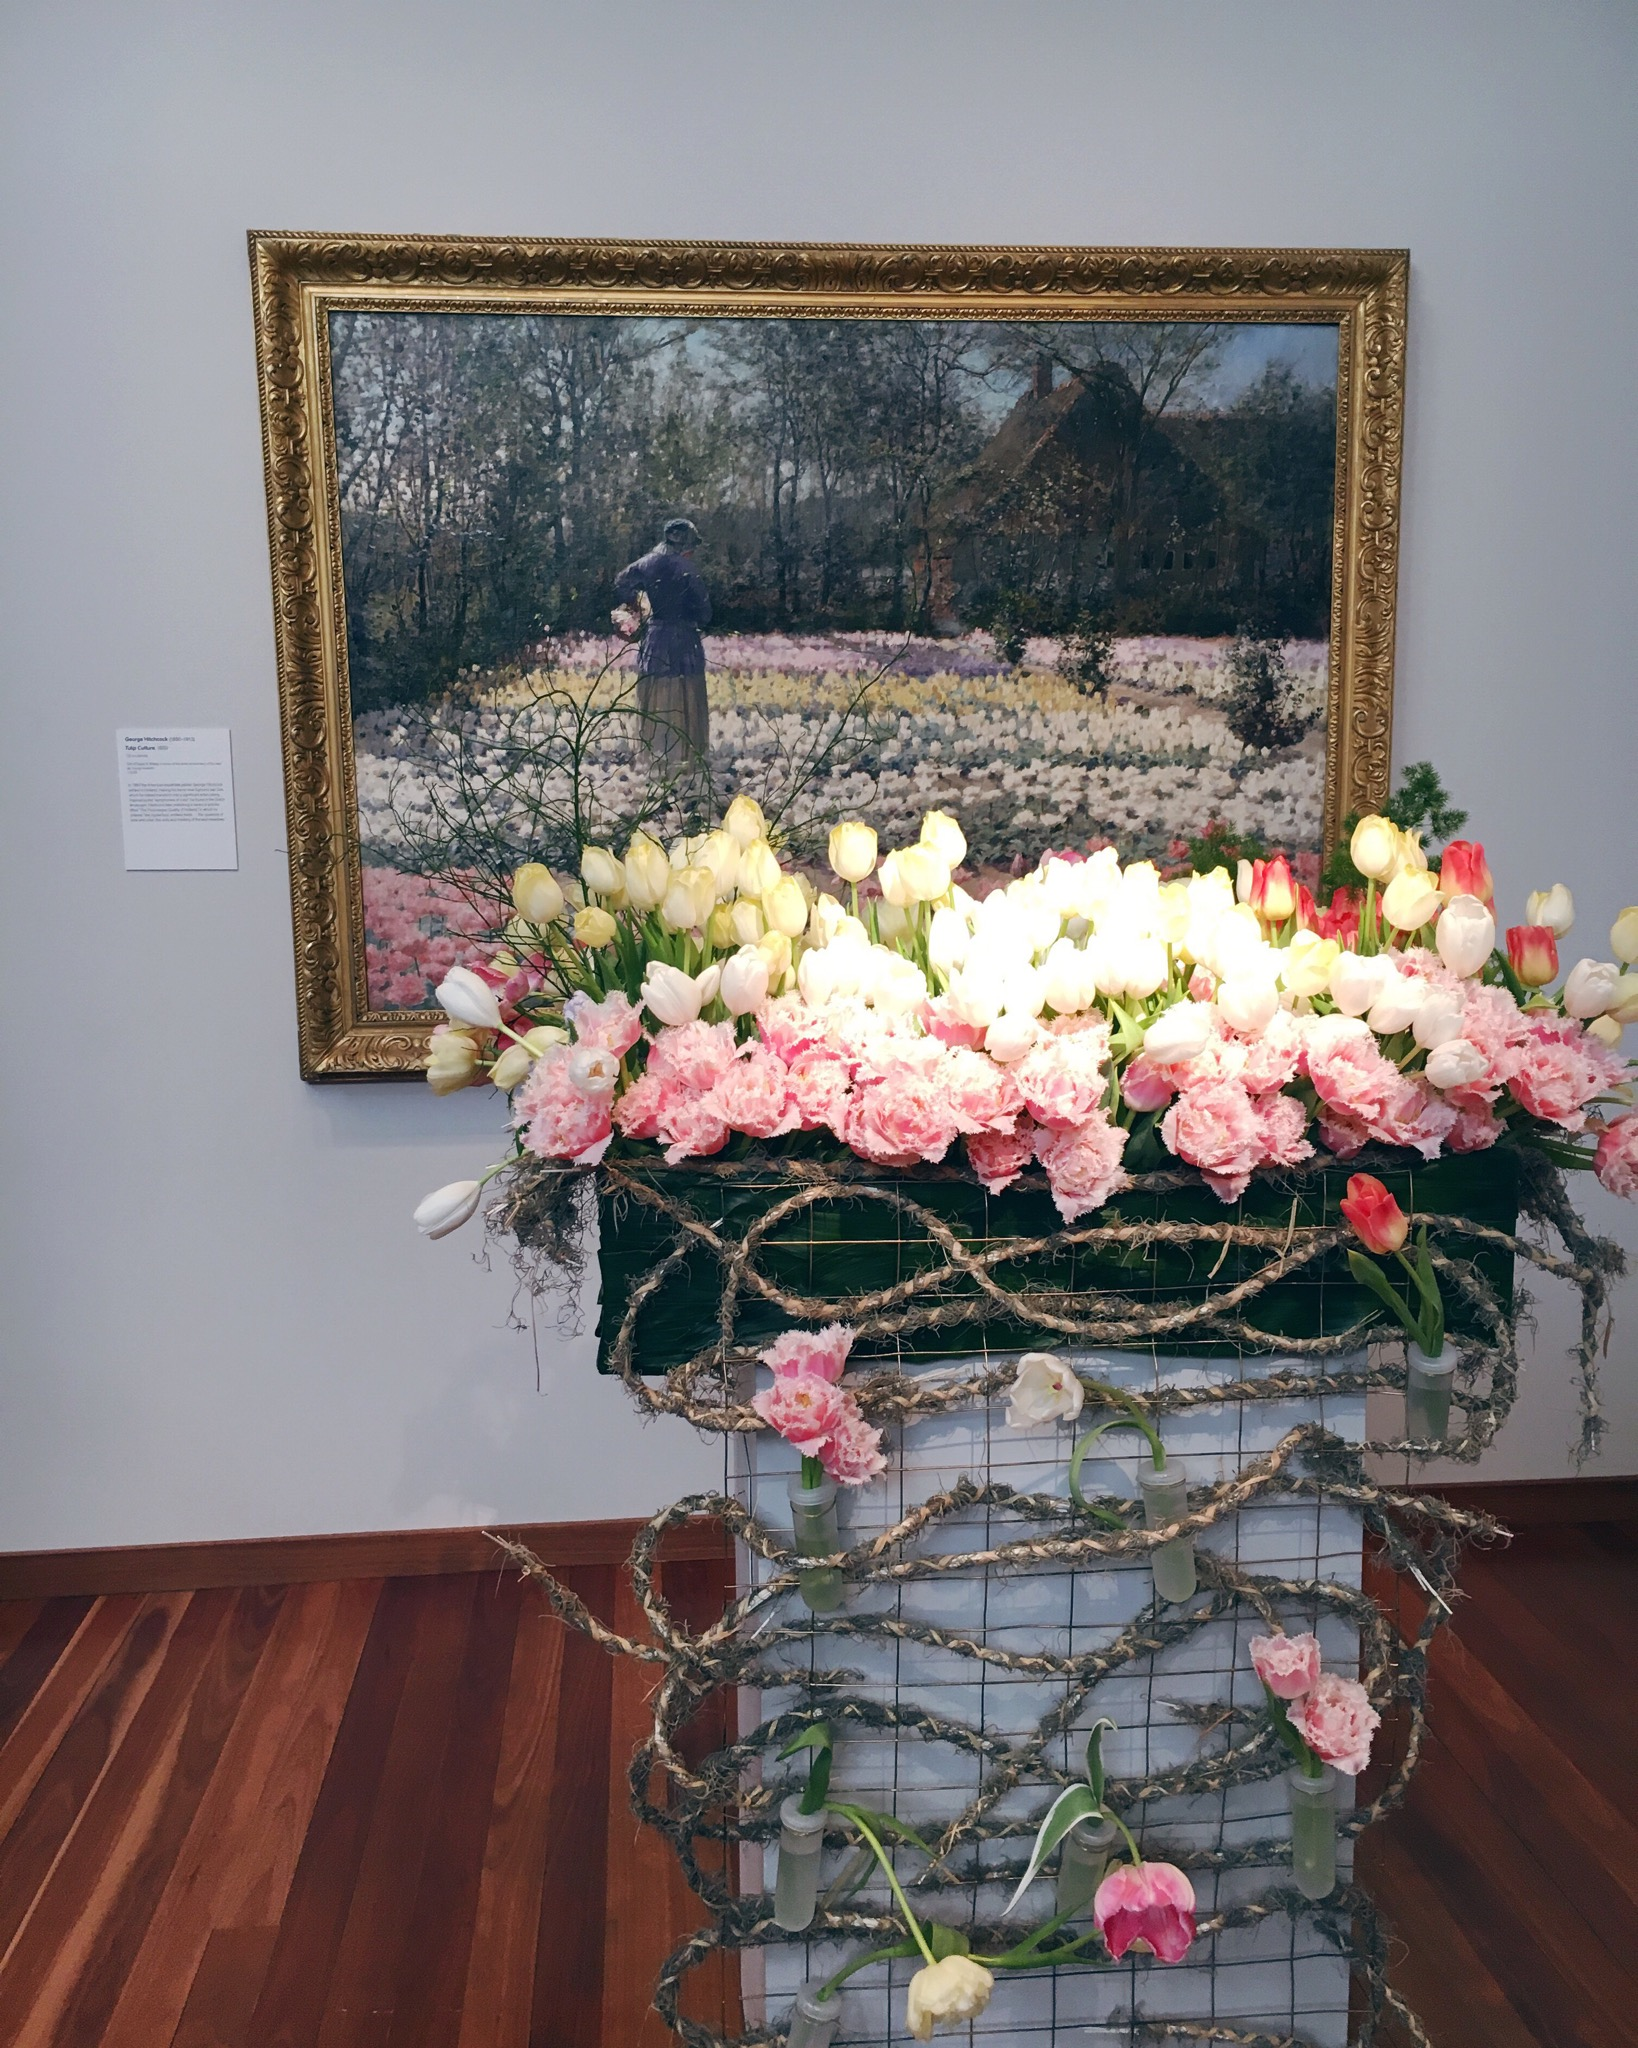 Our favorite combo of the entire day was this incredible tulip arrangement that felt like the painting come to life.